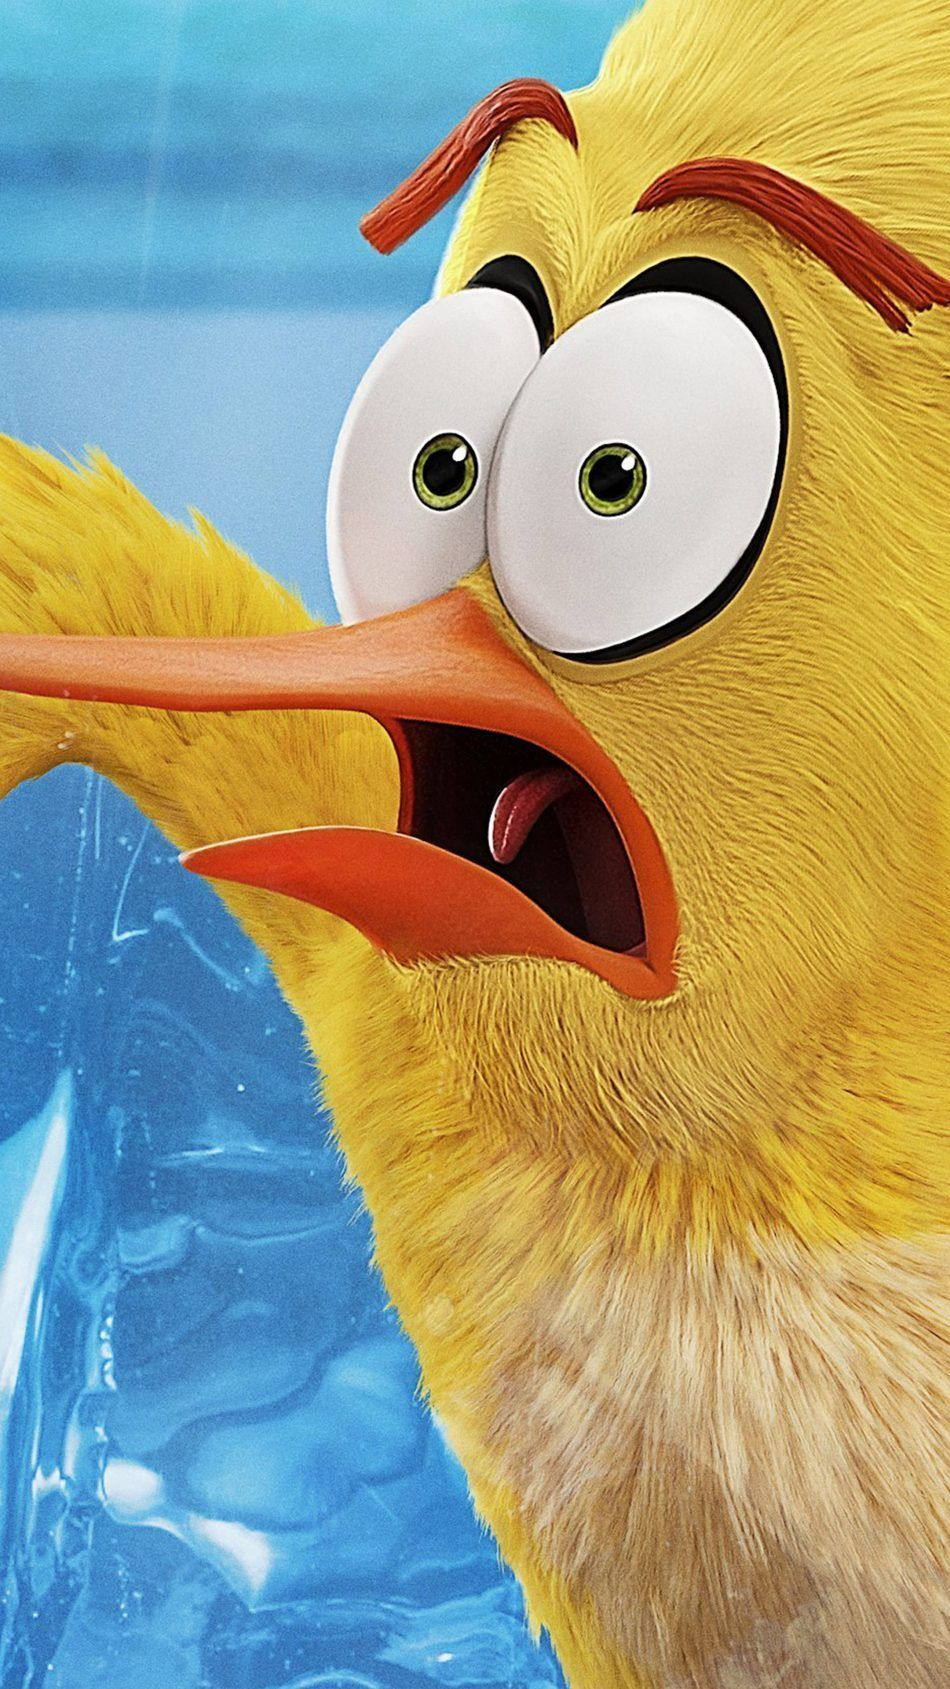 Bird Beak Yellow Close Up Illustration Mascot In 2020 Angry Birds Angry Birds Movie Movie Wallpapers